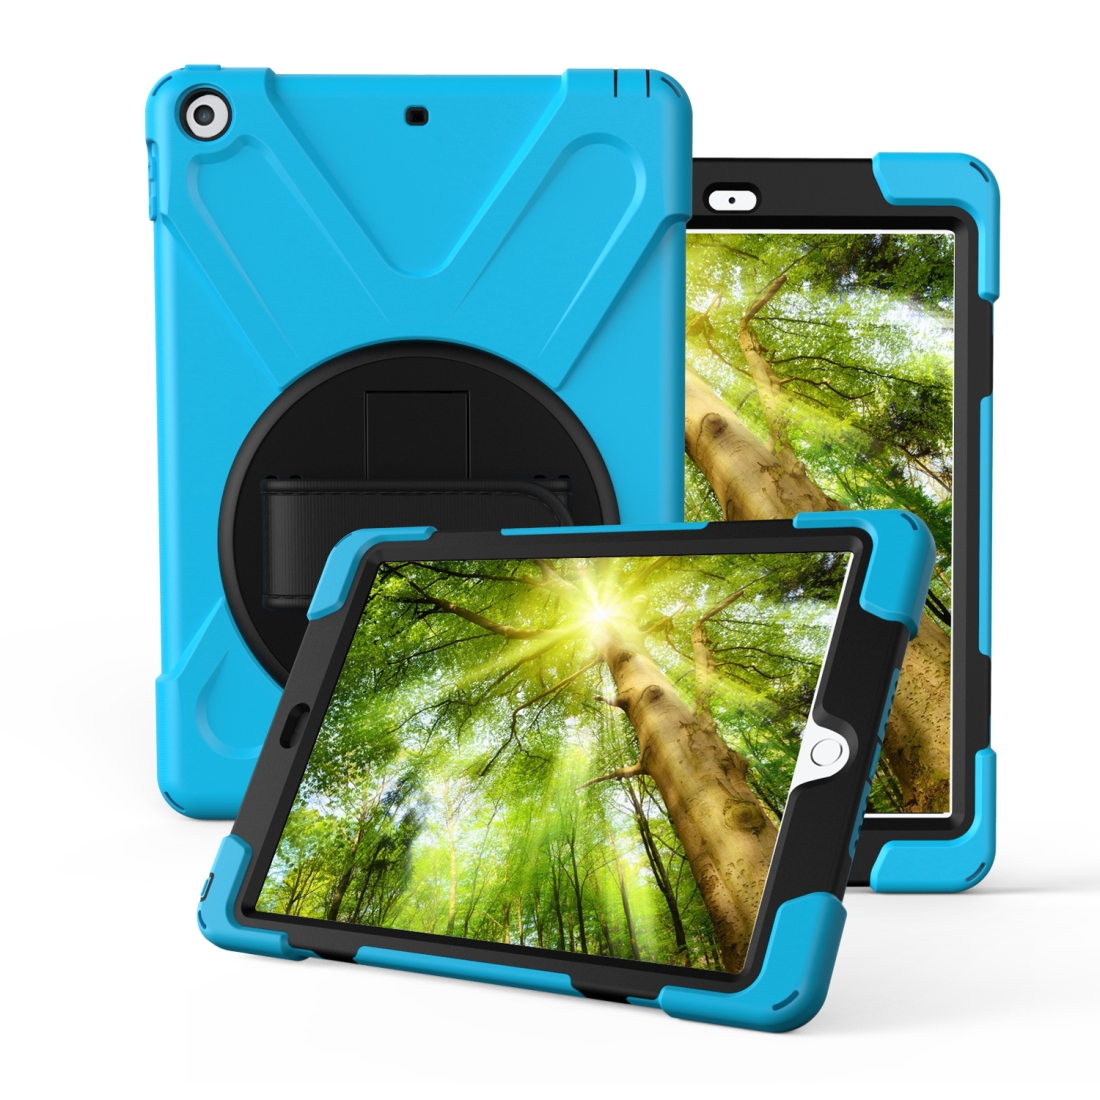 iPad 7th Generation Case (10.2 Inch) With A Protective Rotatable Design And Hand Strap (Light Blue)